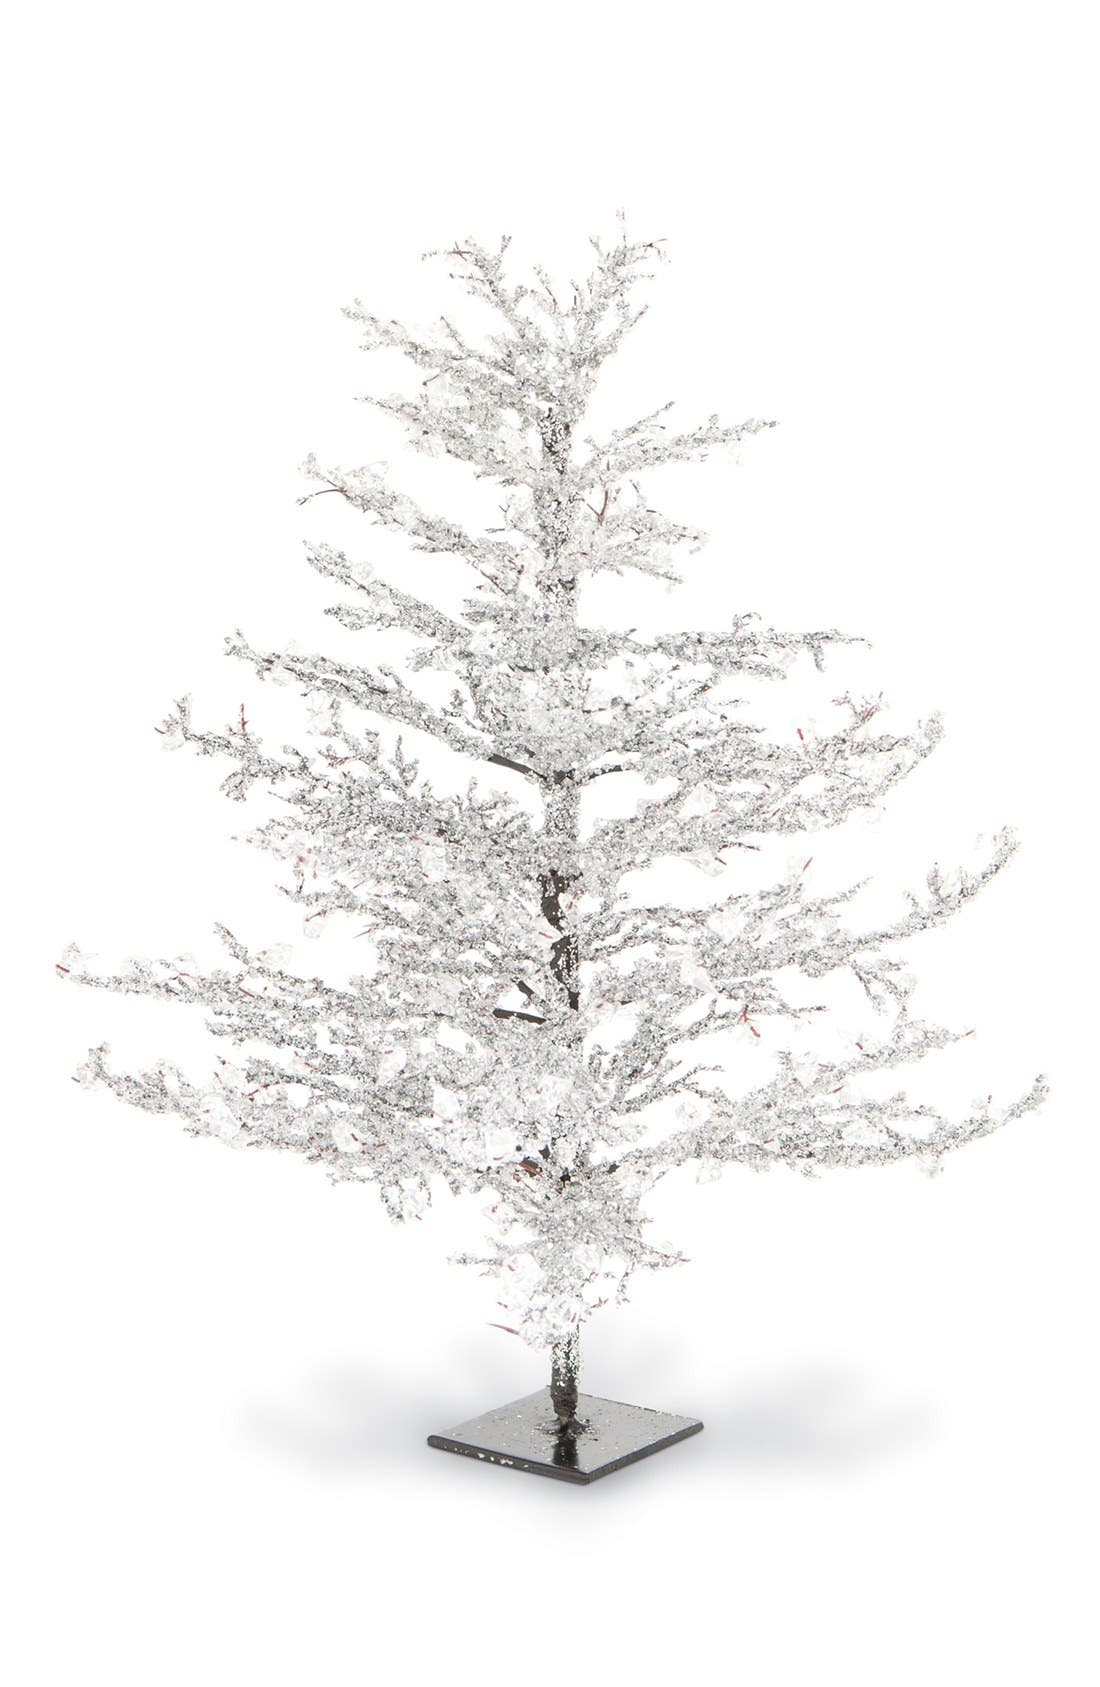 Alternate Image 1 Selected - K & K Interiors Iced Christmas Tree